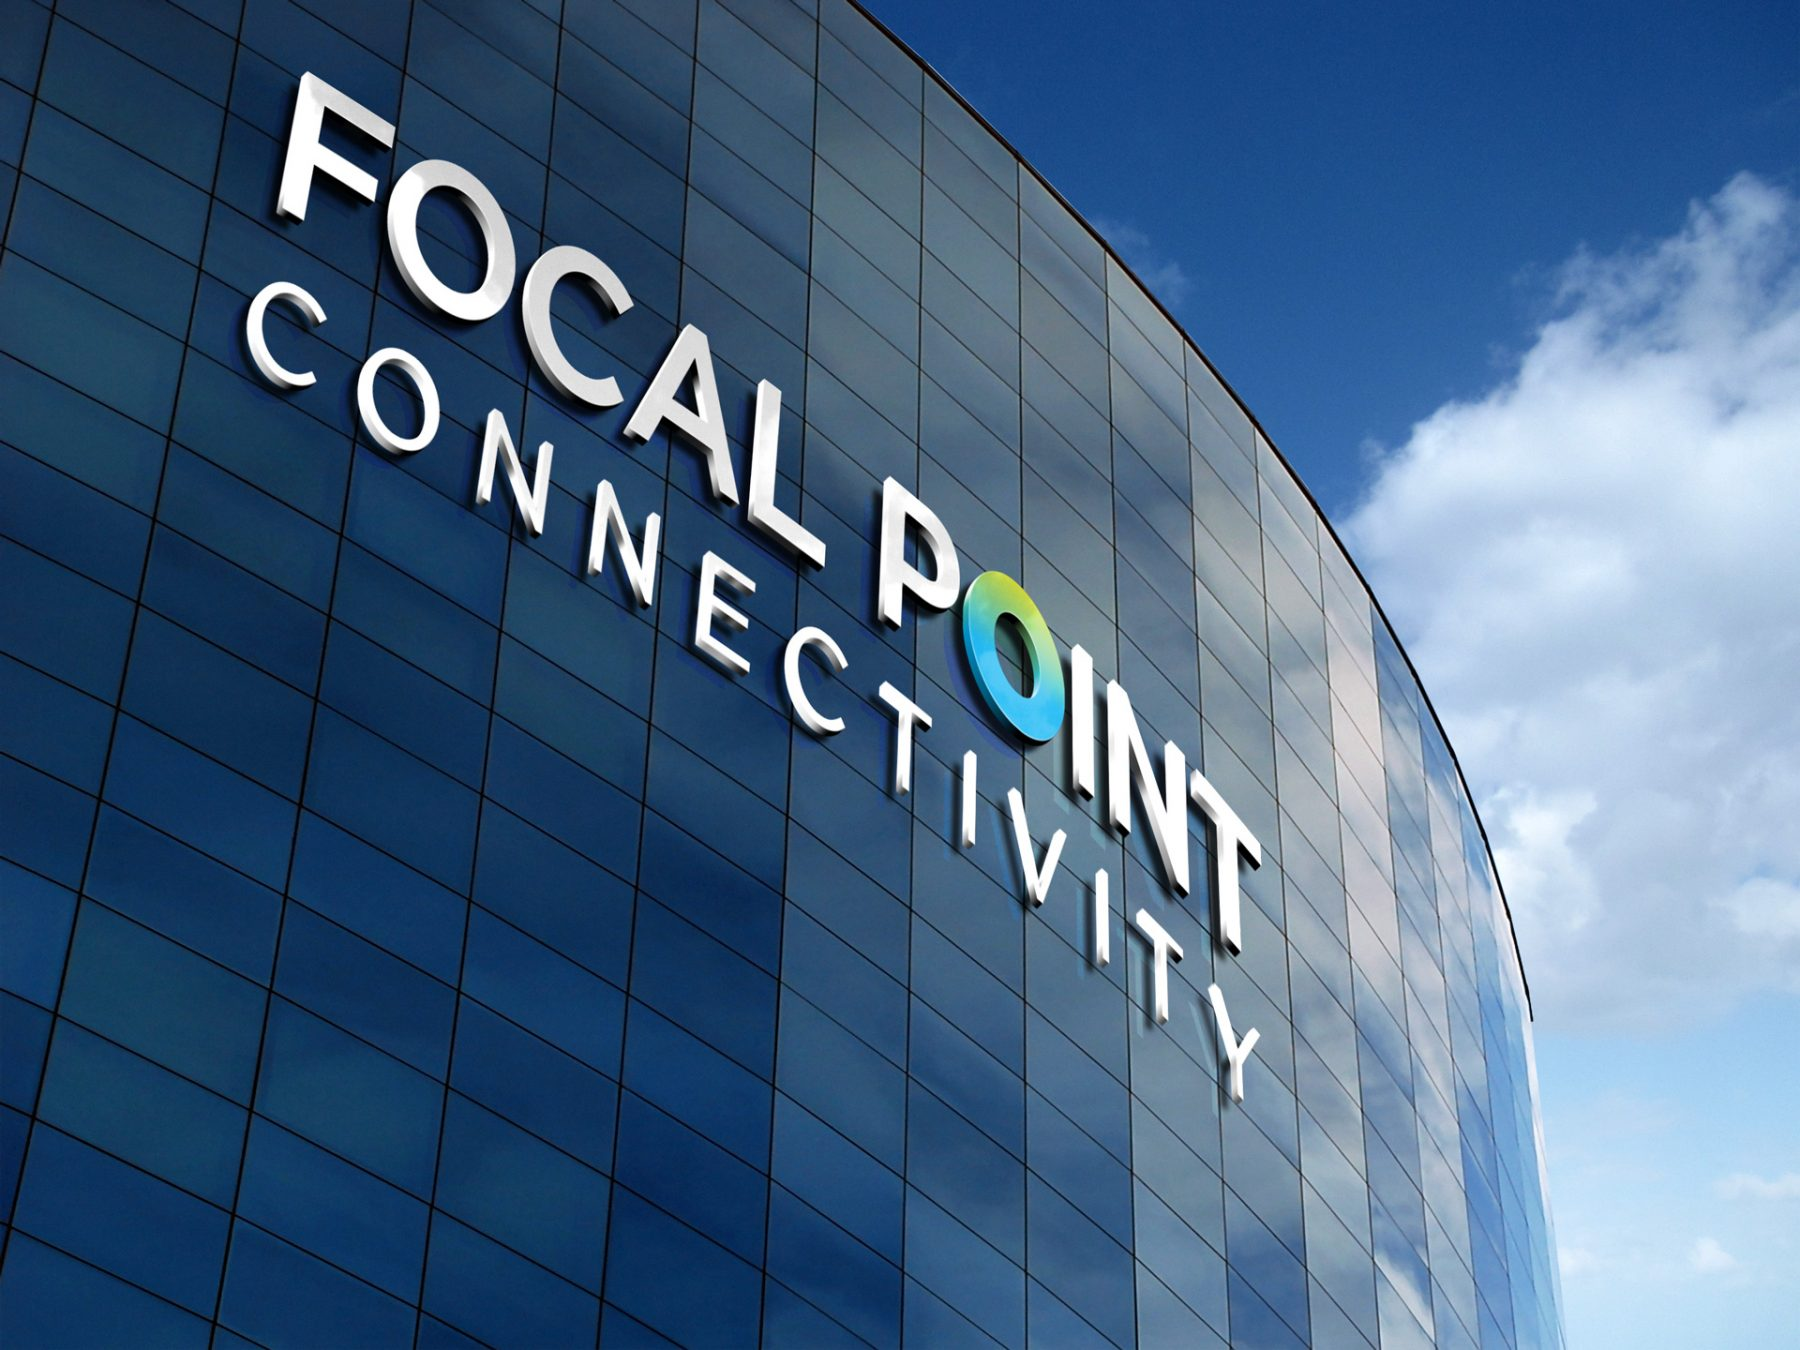 Focal Point Connectivity - logo design - signage